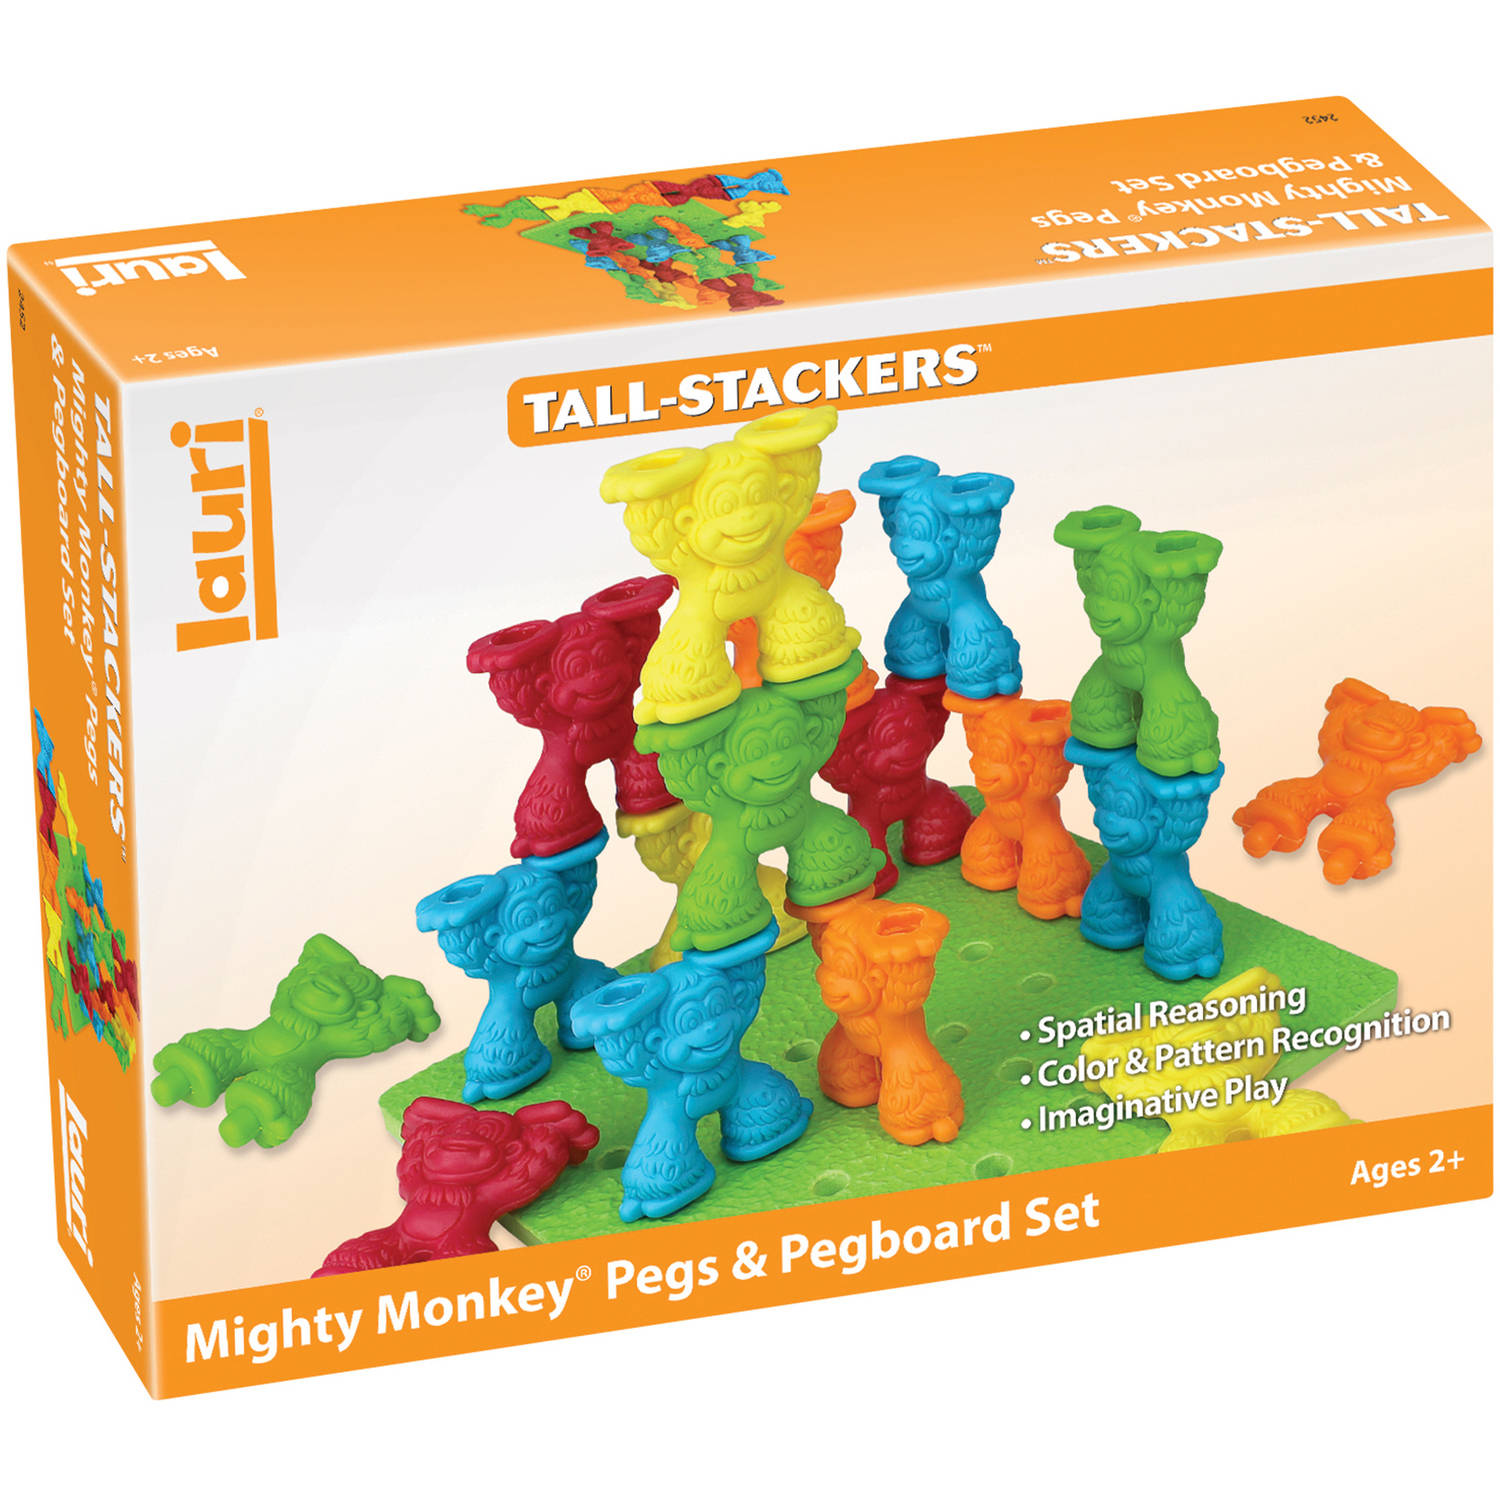 LAURI Mighty Monkey Pegs & Pegboard Set